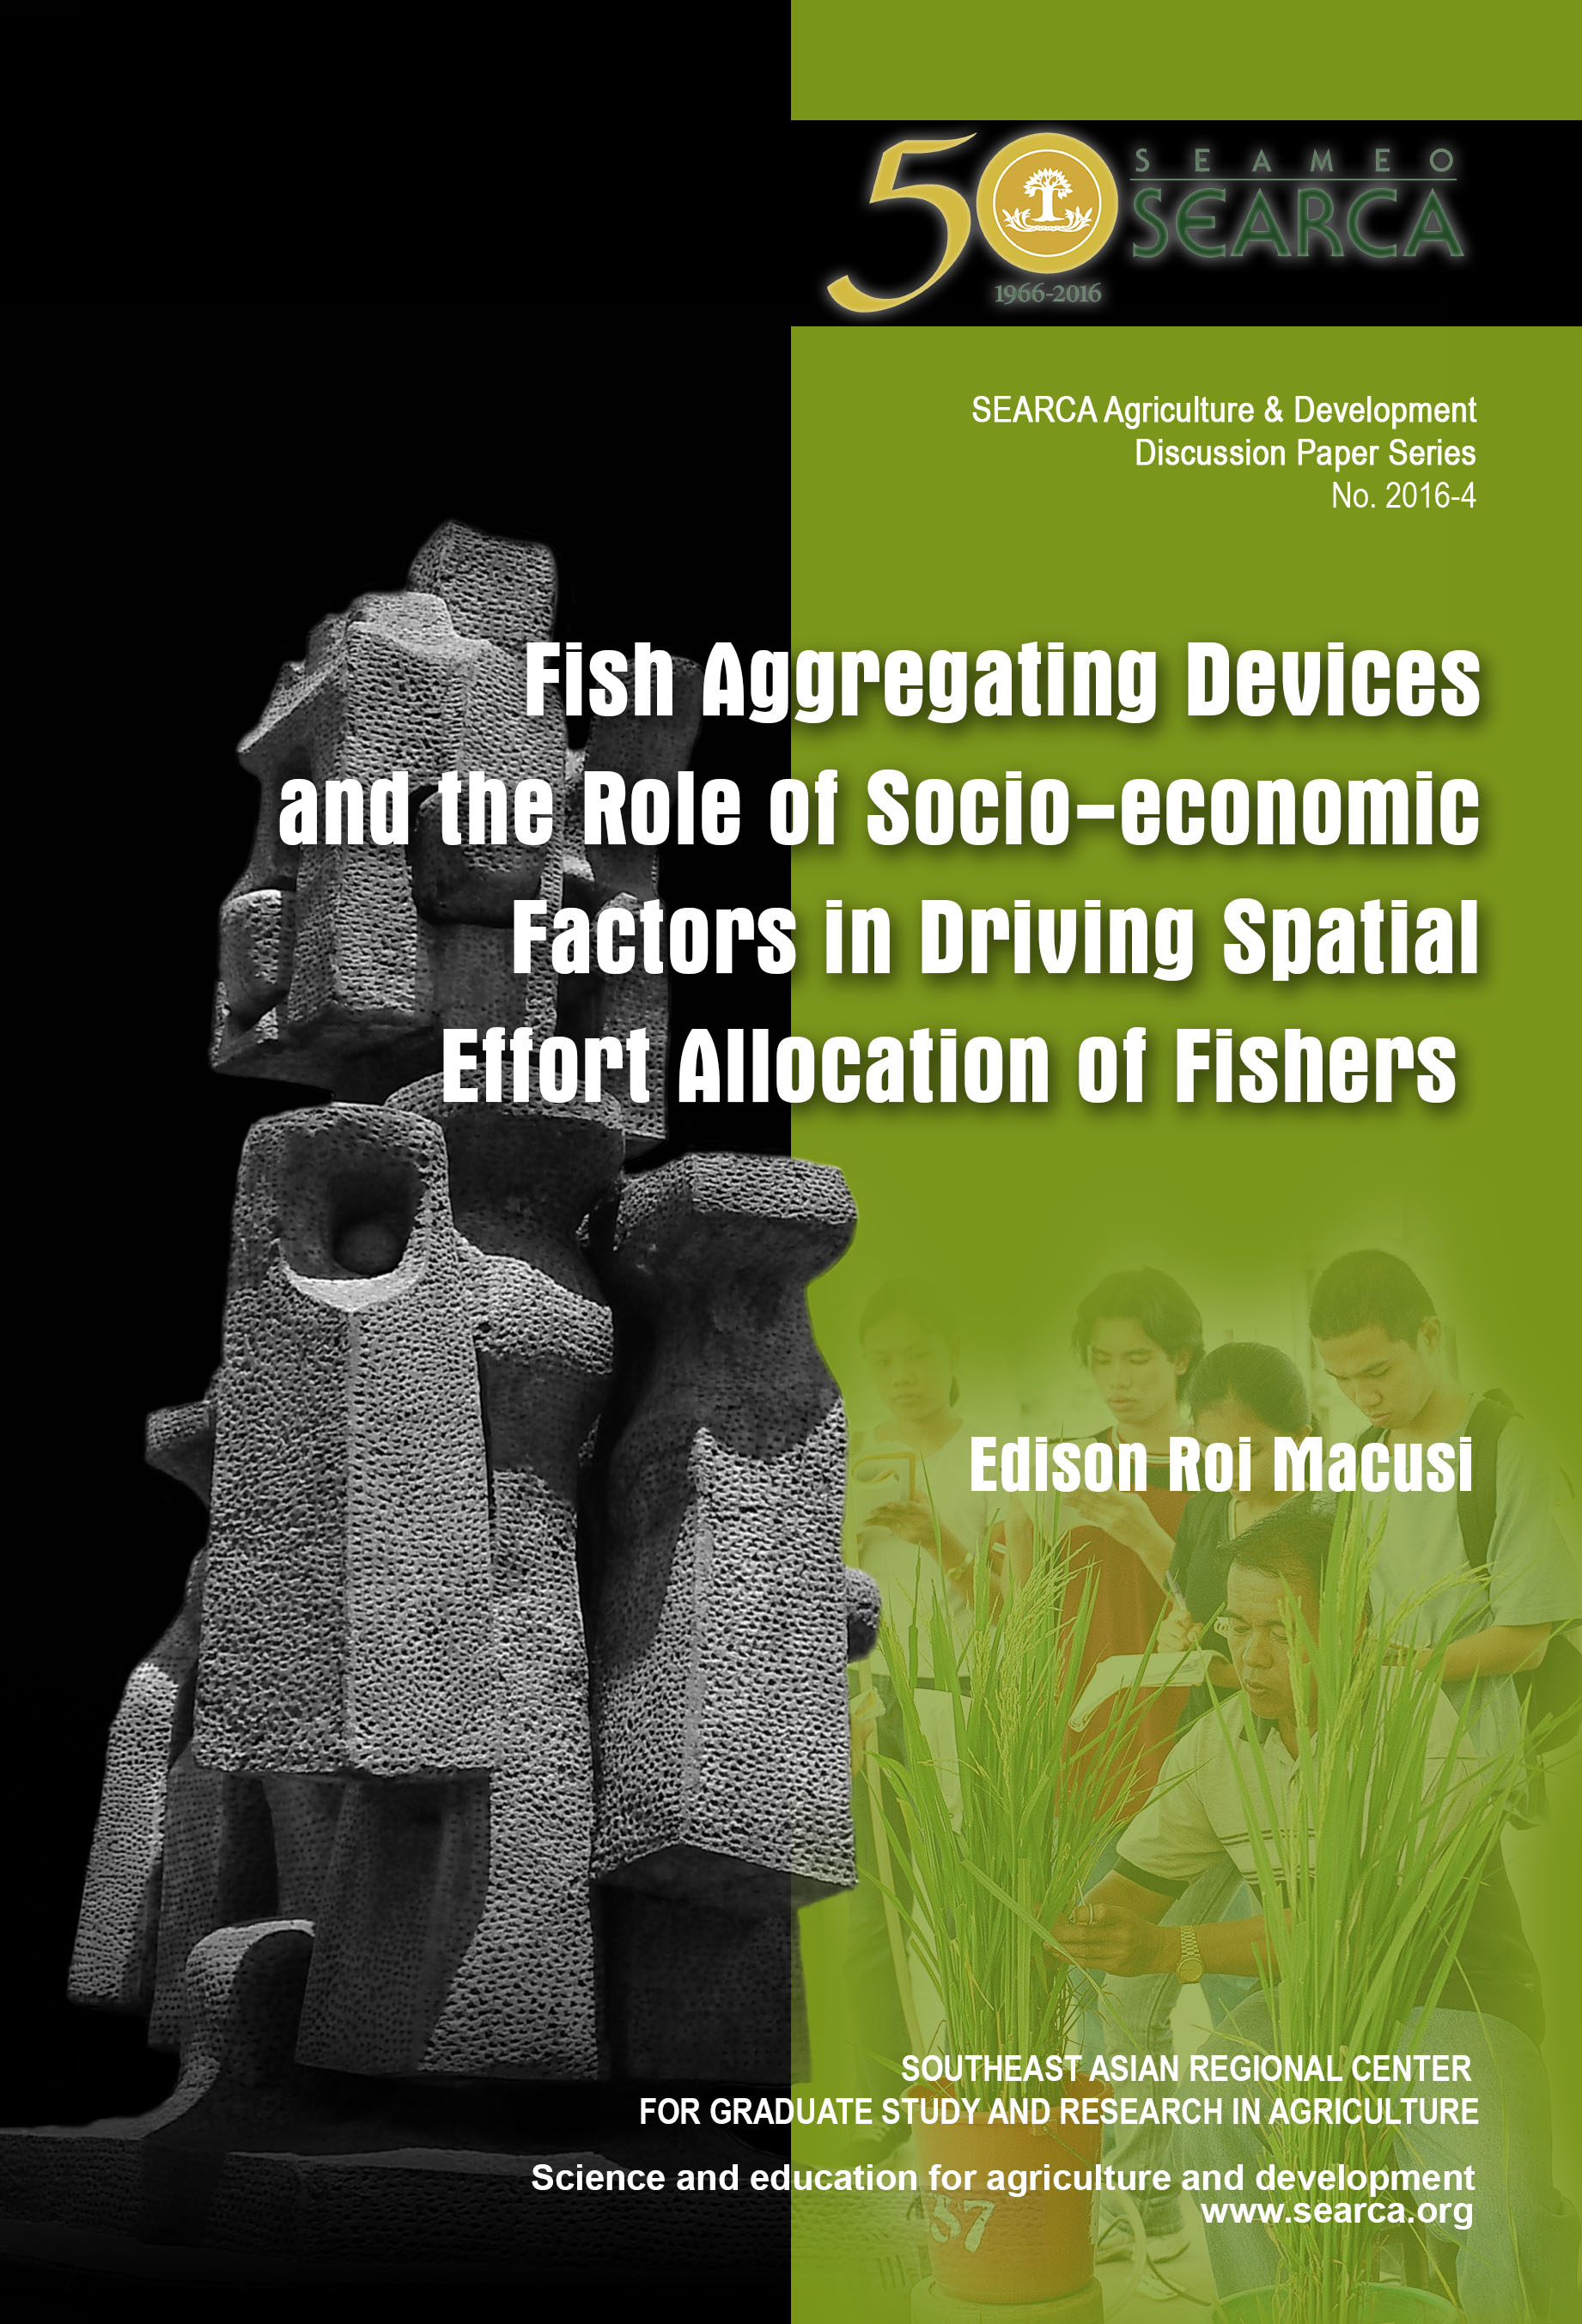 Fish Aggregating Devices and the Role of Socio-economic Factors in Driving Spatial Effort Allocation of Fishers